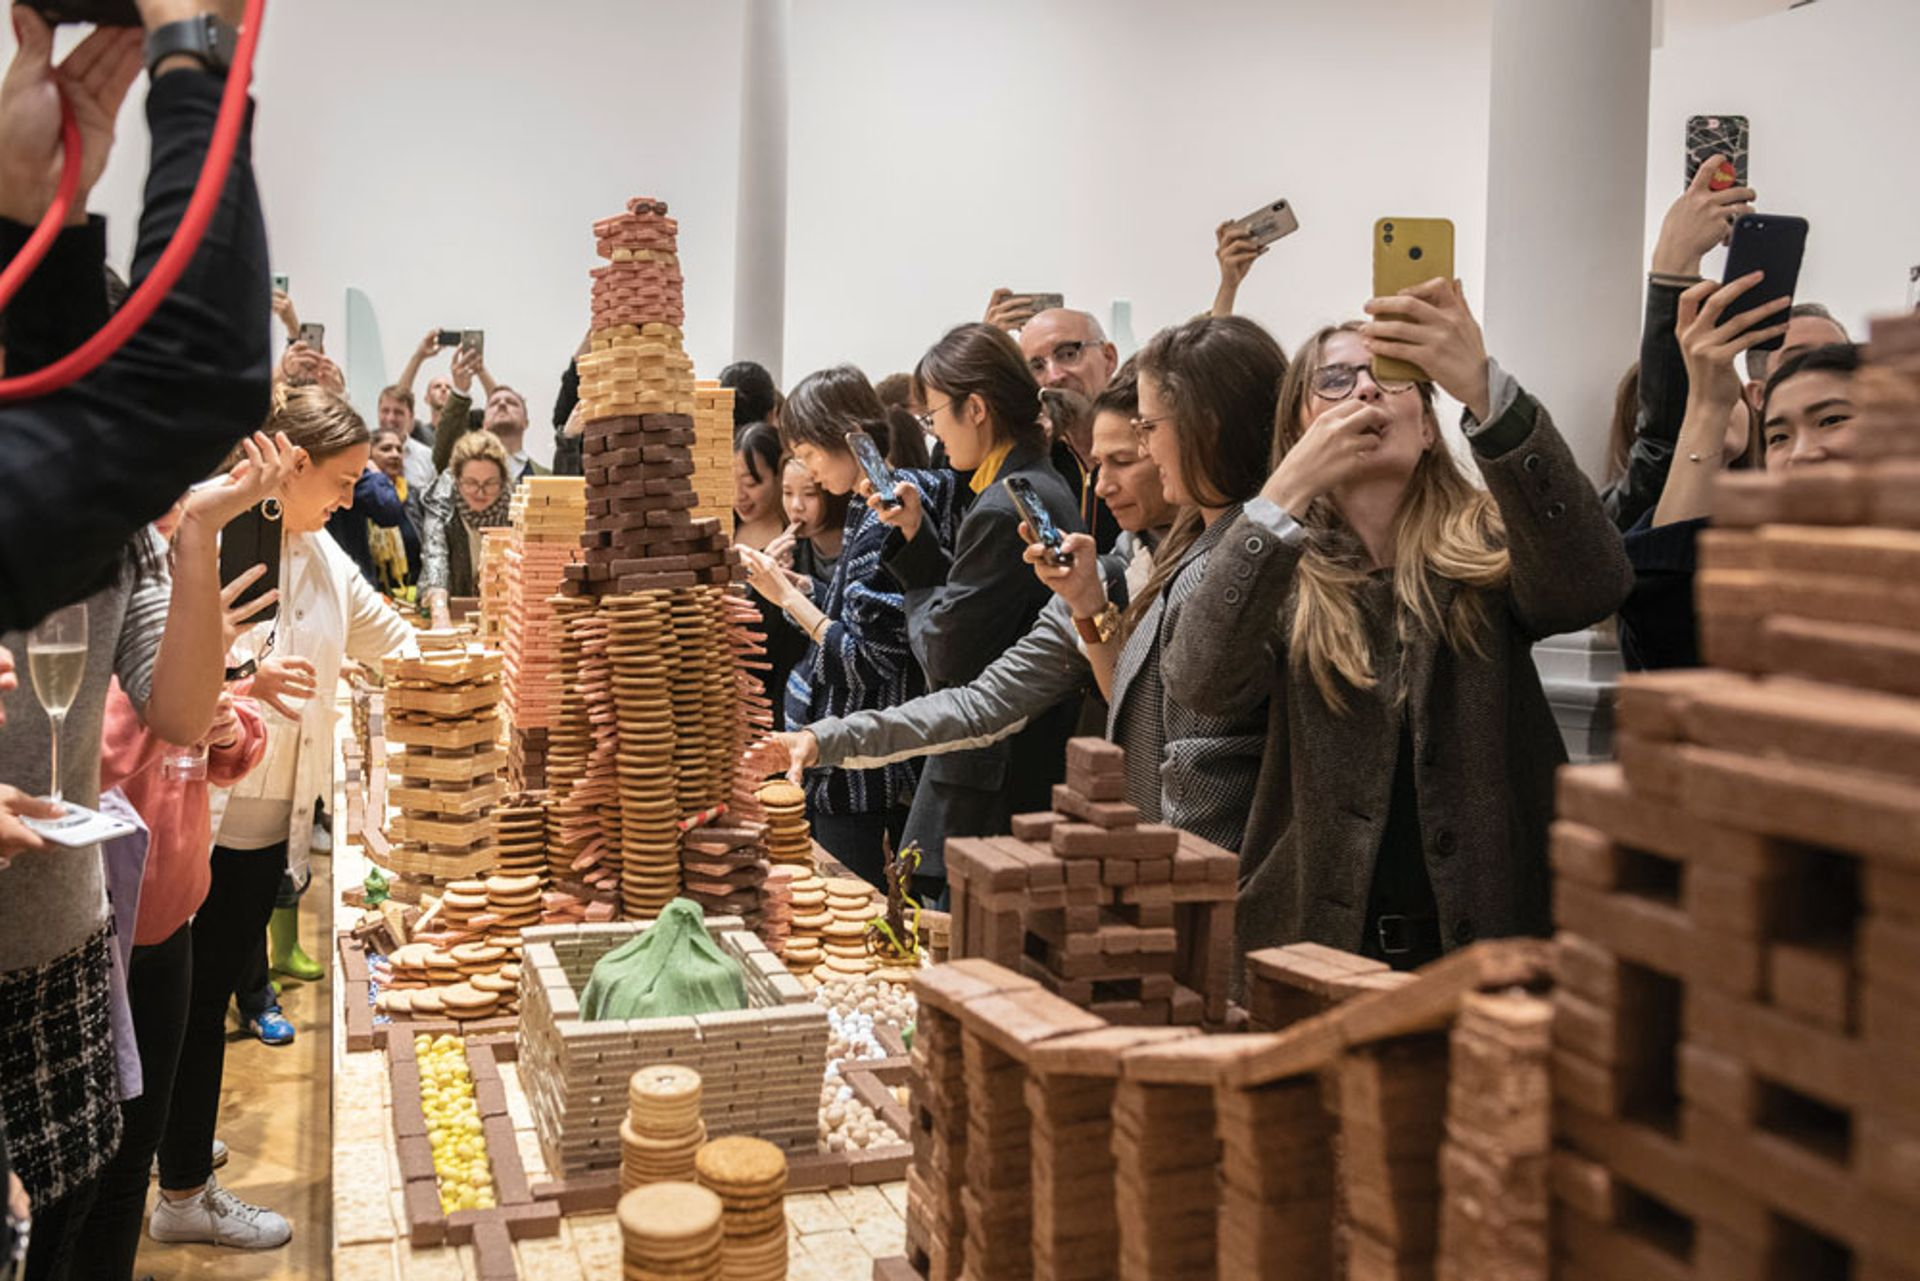 Crumbs! Song Dong's calorific constructions met with visitors' approval Courtesy of the artist and Pace